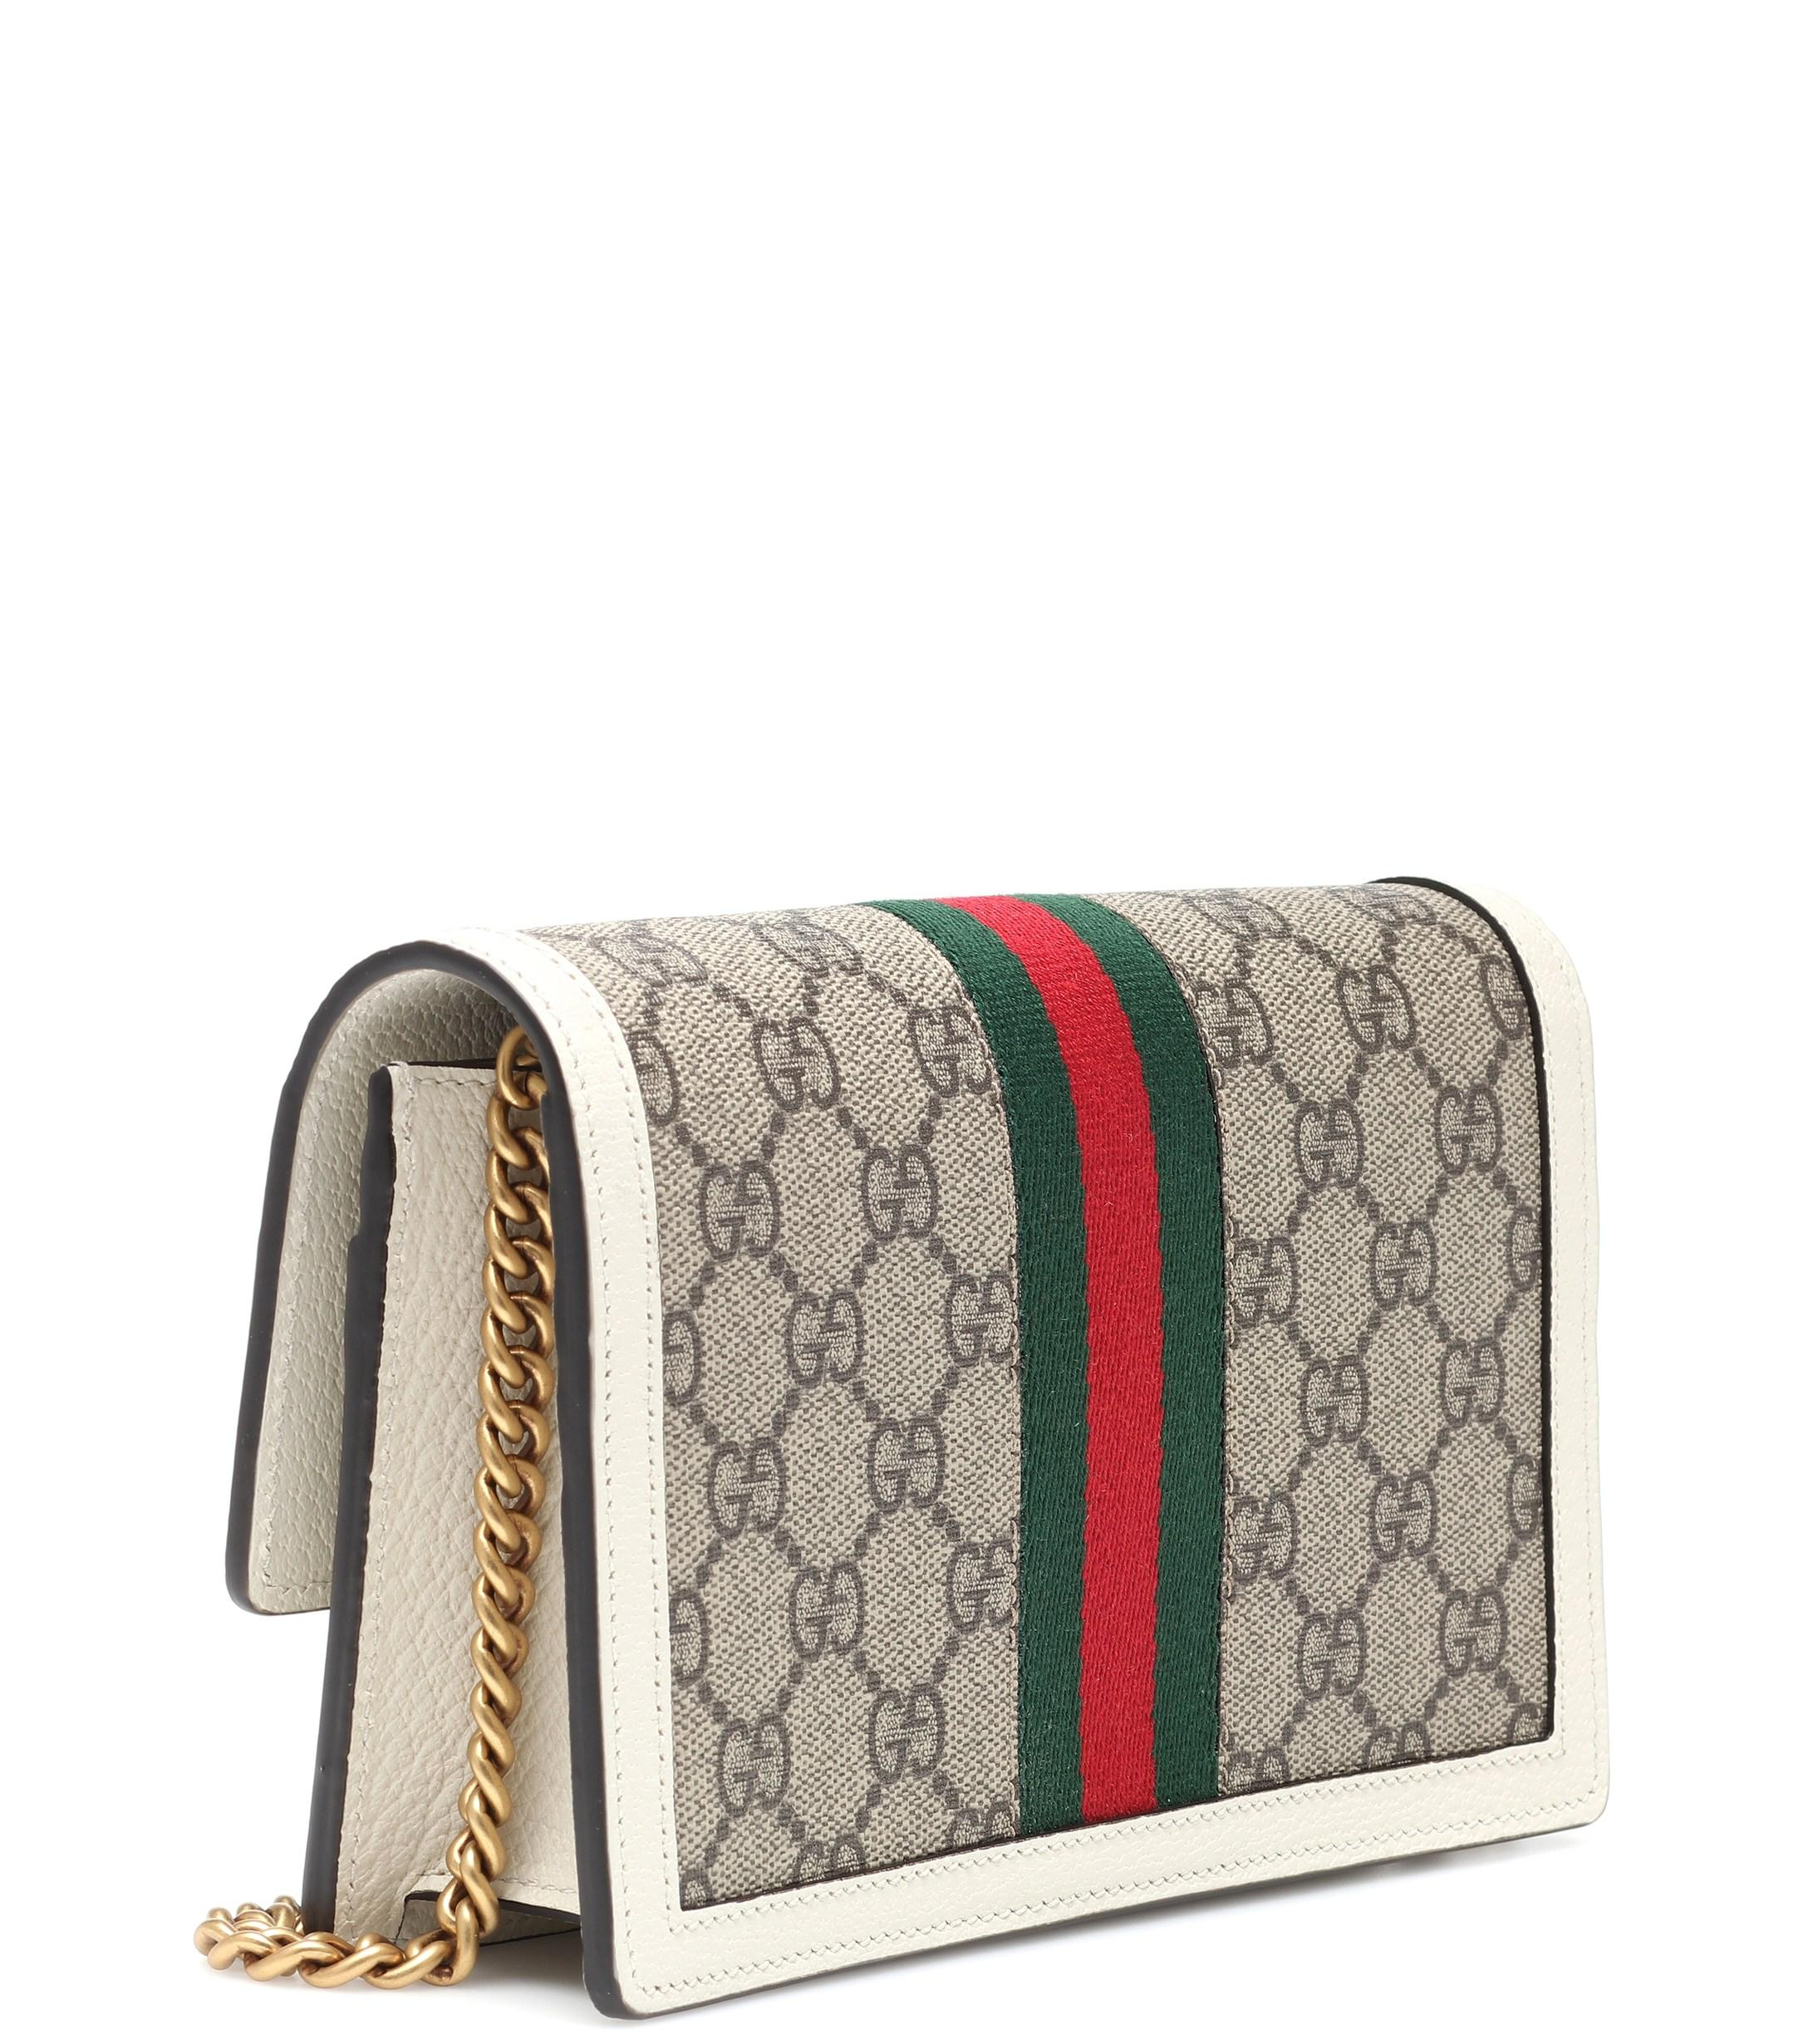 96d05fd5caa3 Gucci - Multicolor Queen Margaret GG Supreme Mini Shoulder Bag - Lyst. View  fullscreen